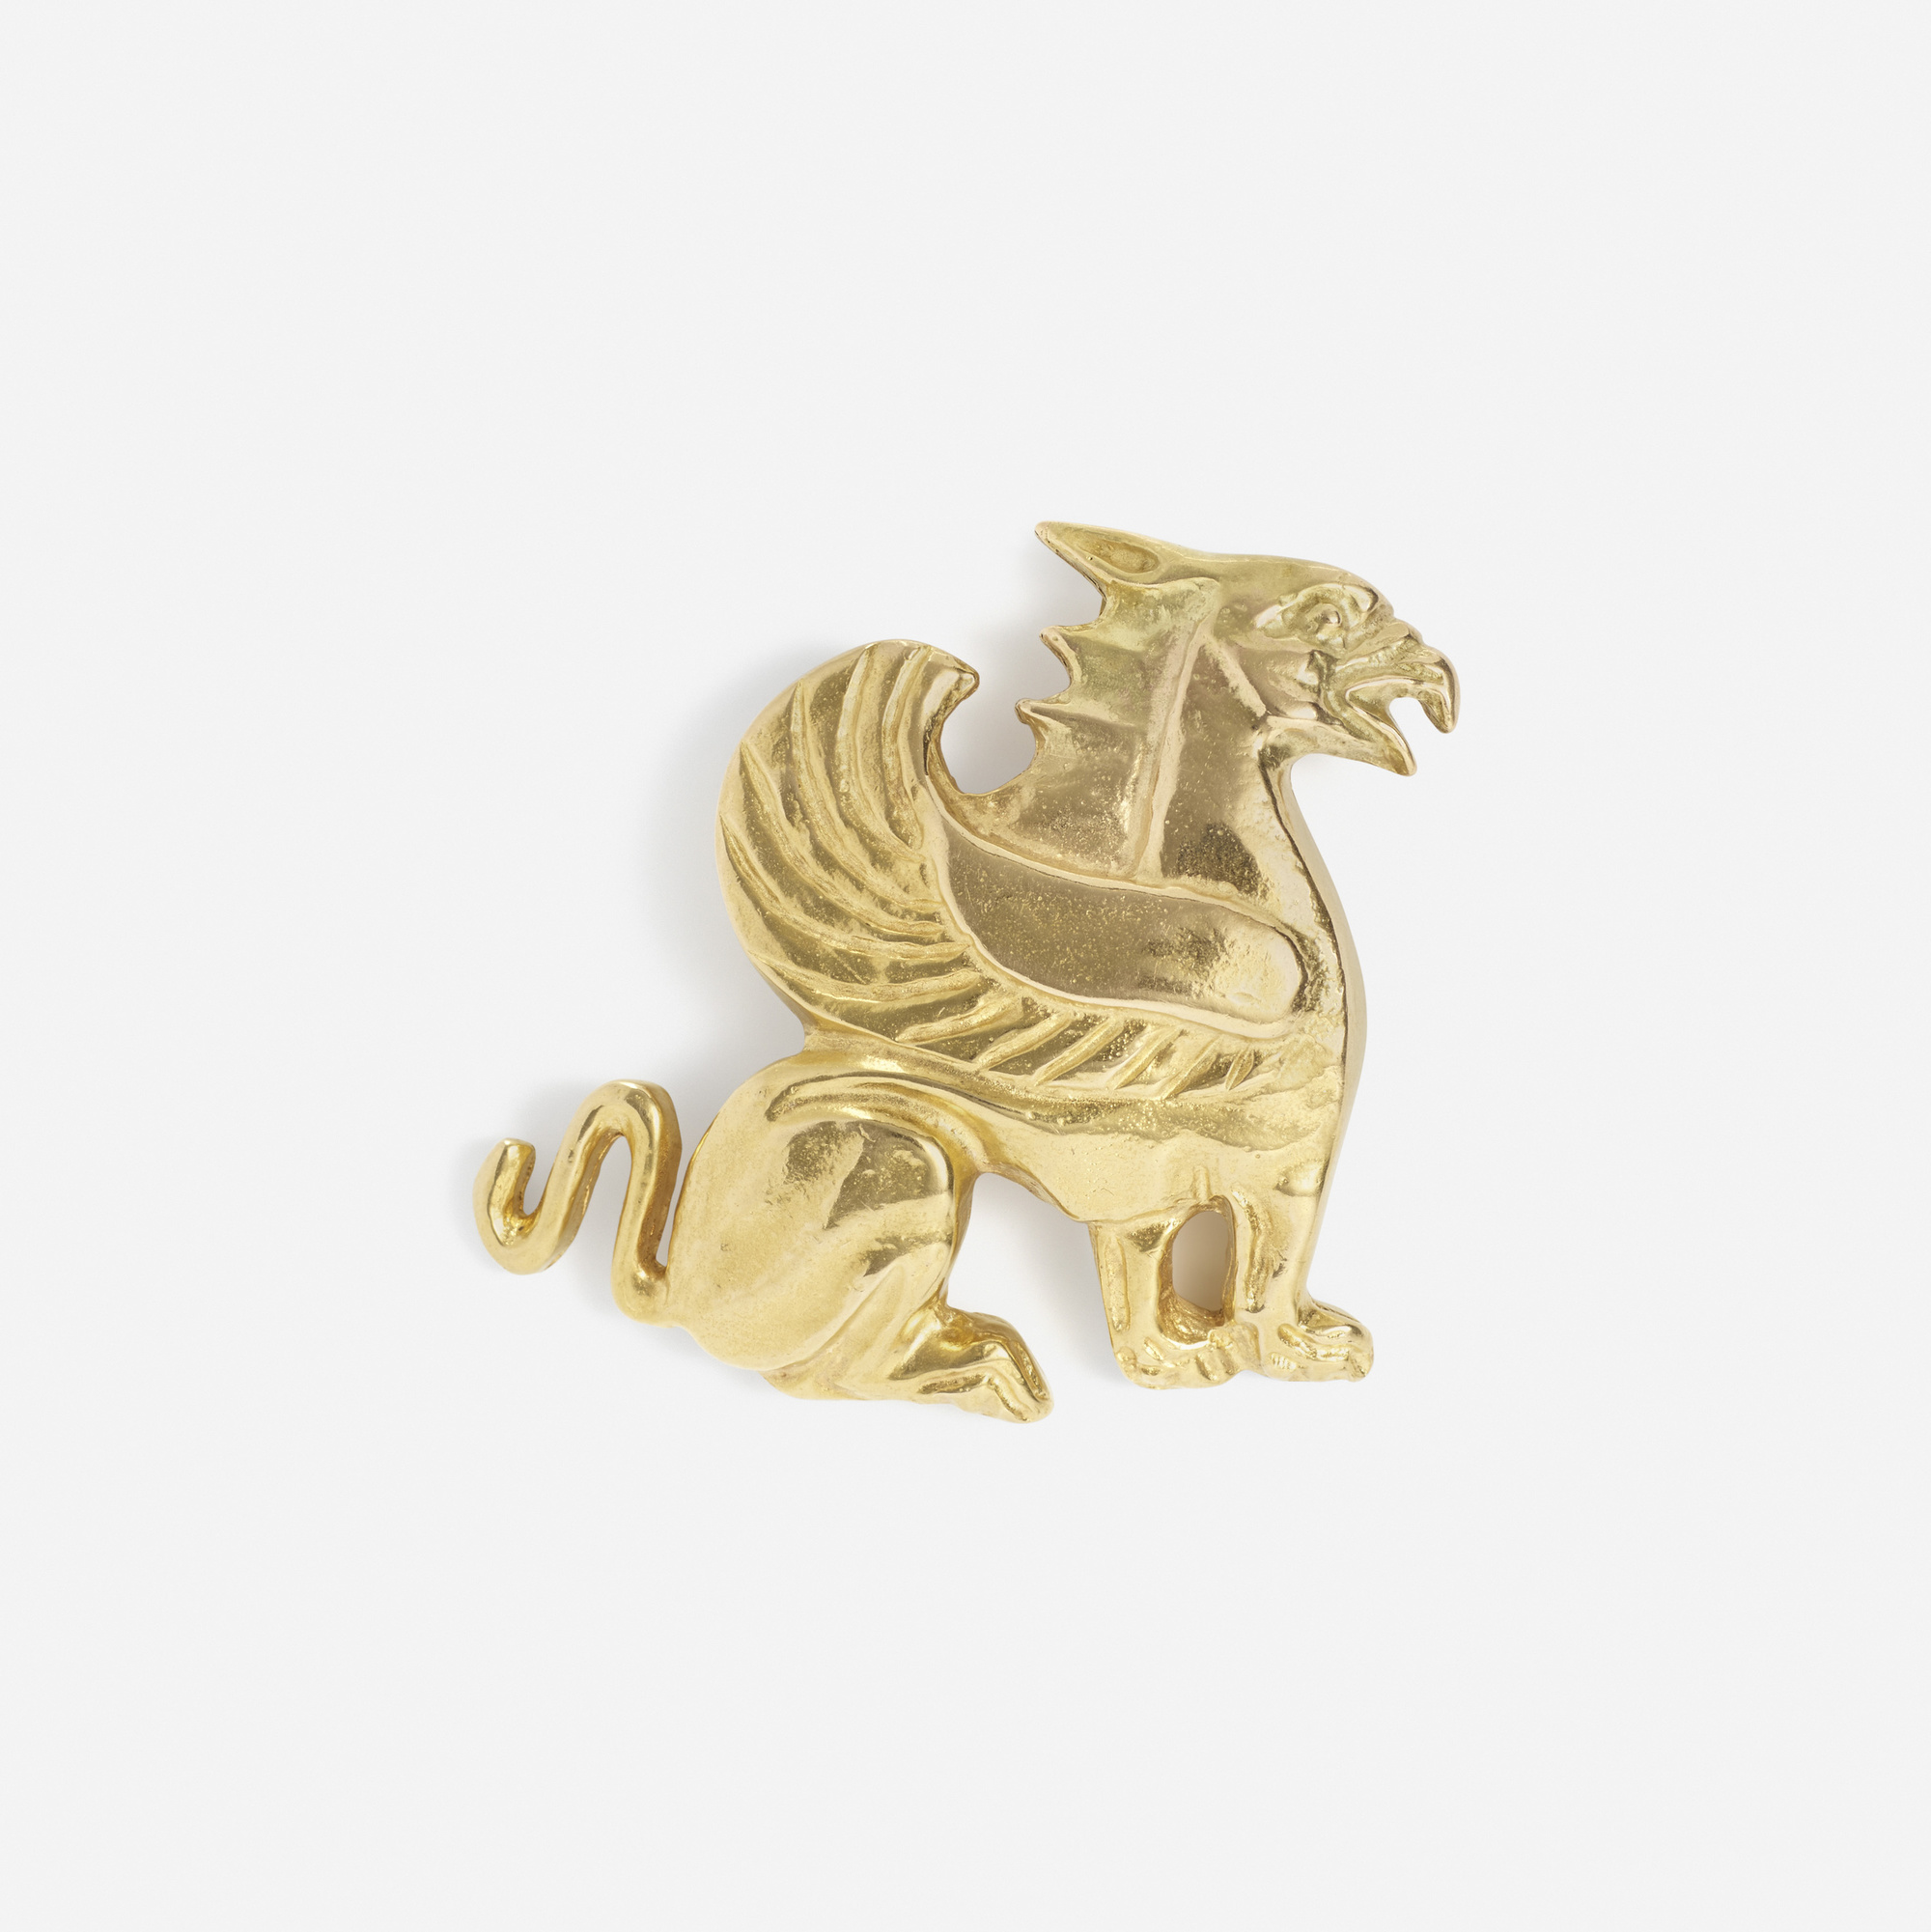 163:  / A gold brooch (1 of 1)